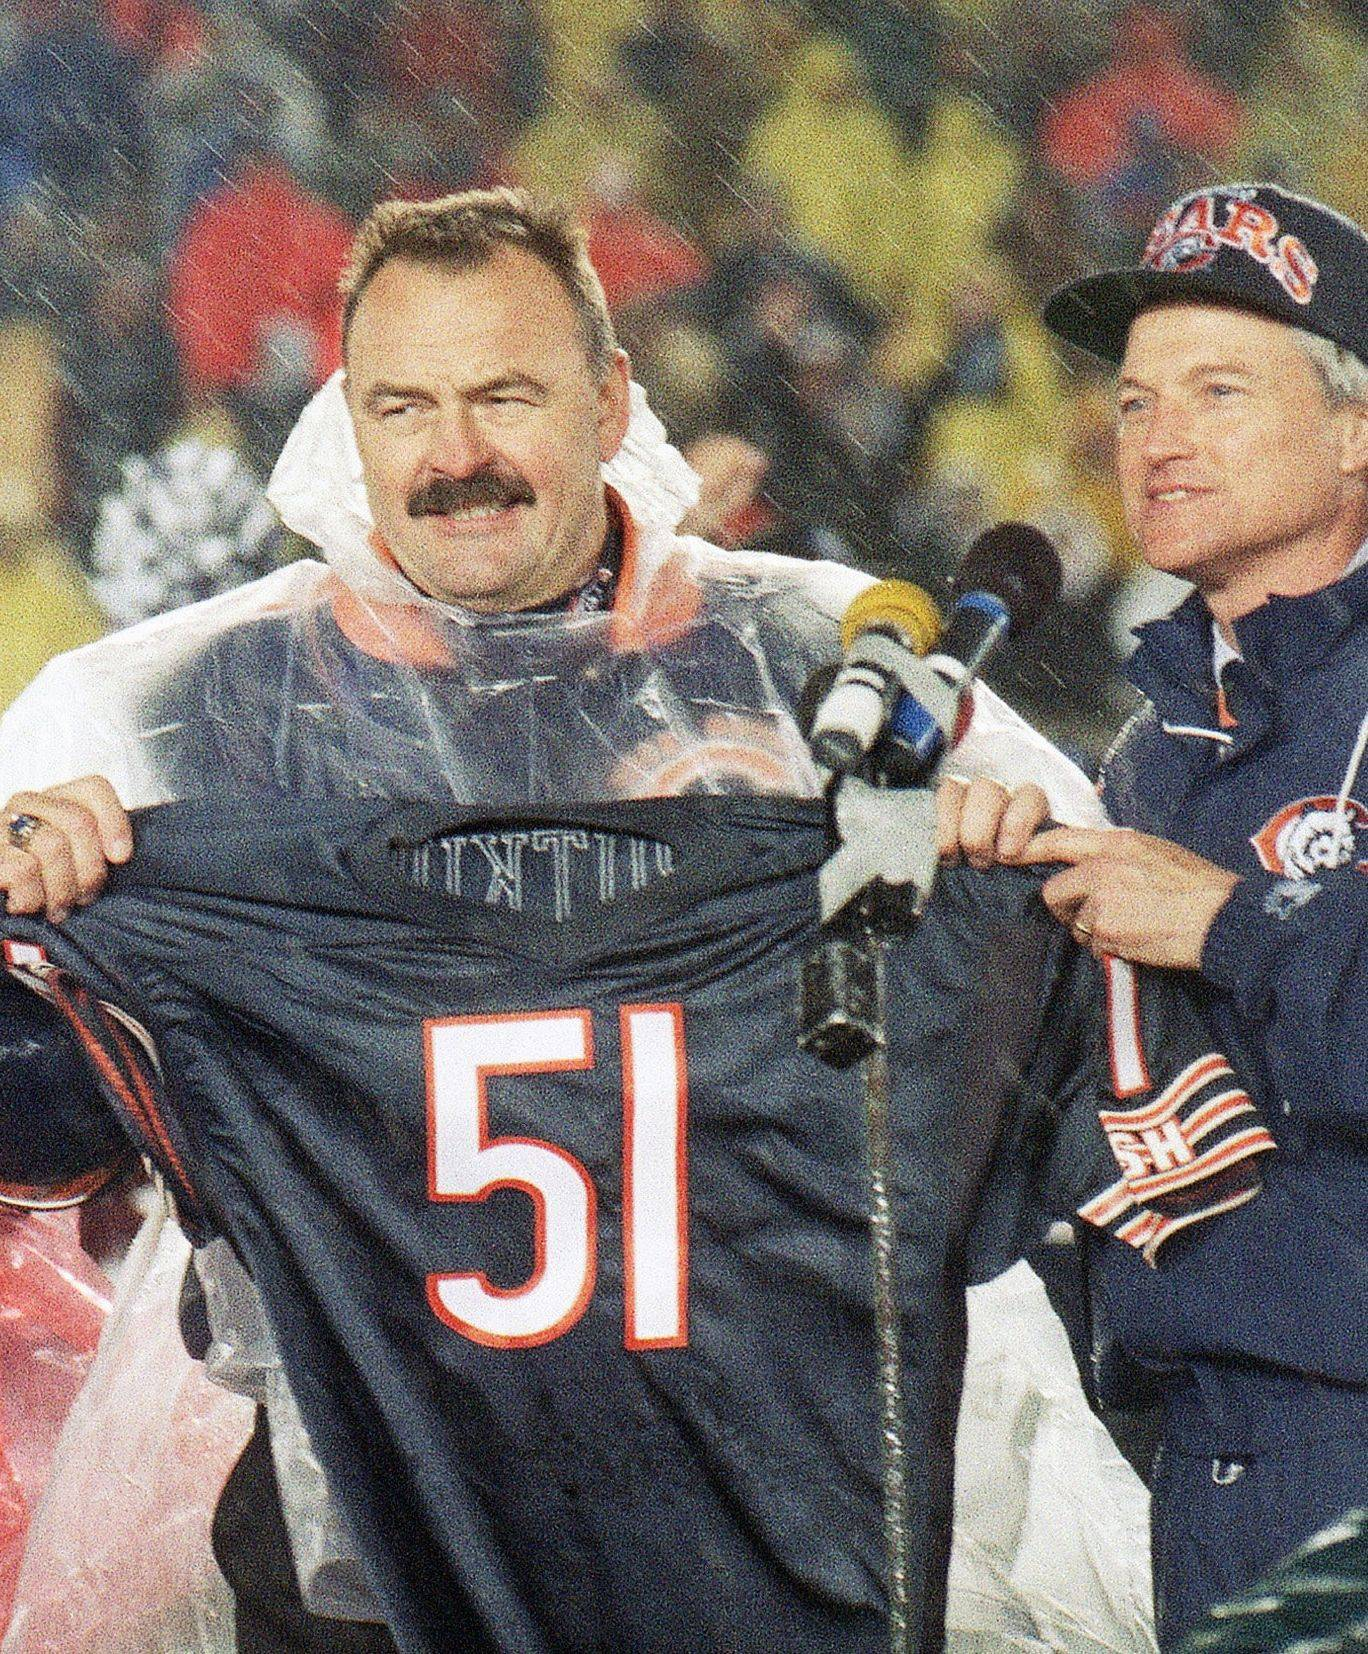 Dick Butkus (left) and Gale Sayers holds up their jerseys during a driving rainstorm on Oct. 31, 1994, when the Bears retired both Hall of Famers numbers.